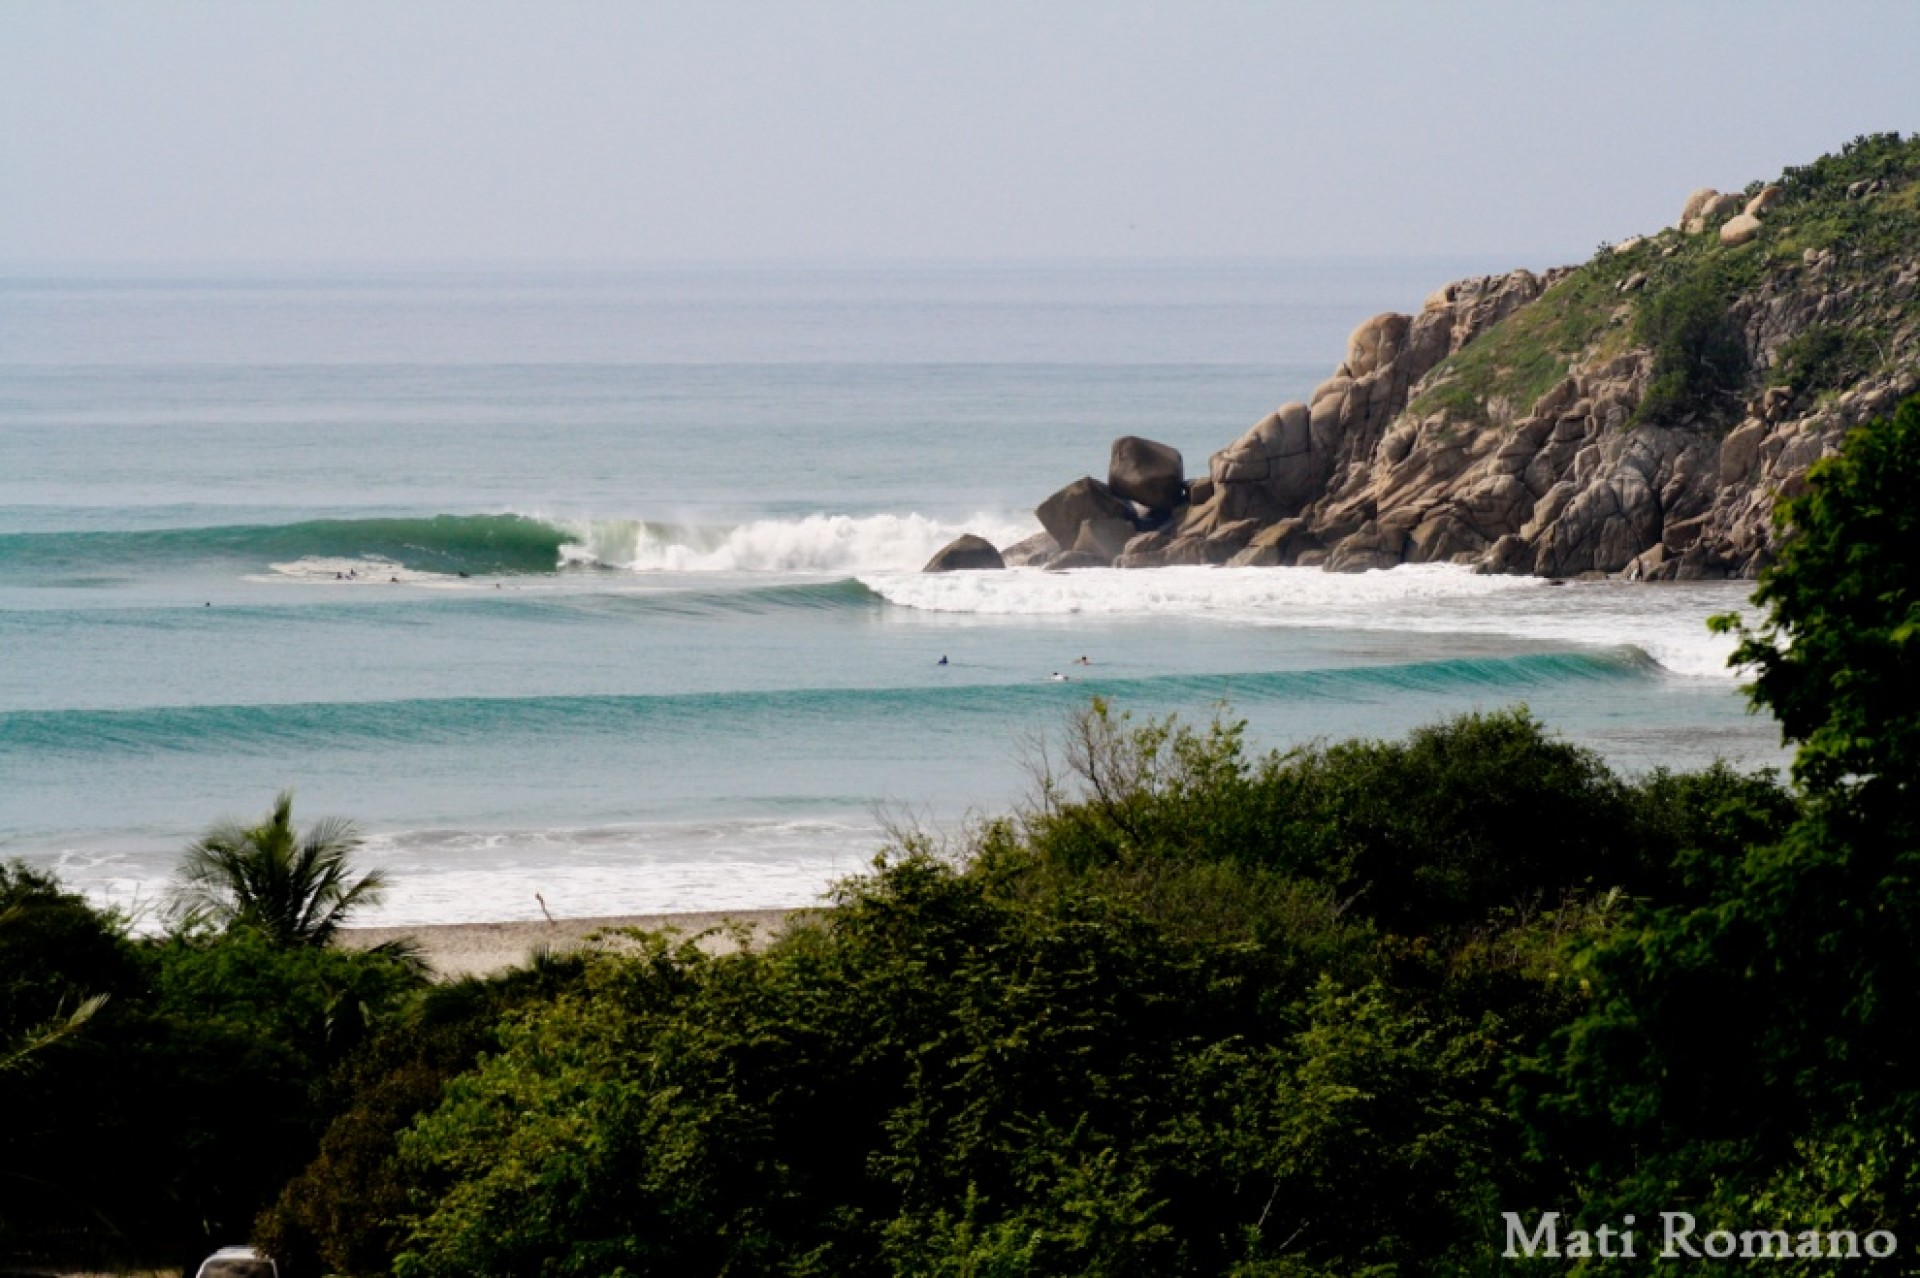 Mati Romano's photo of Punta Conejo